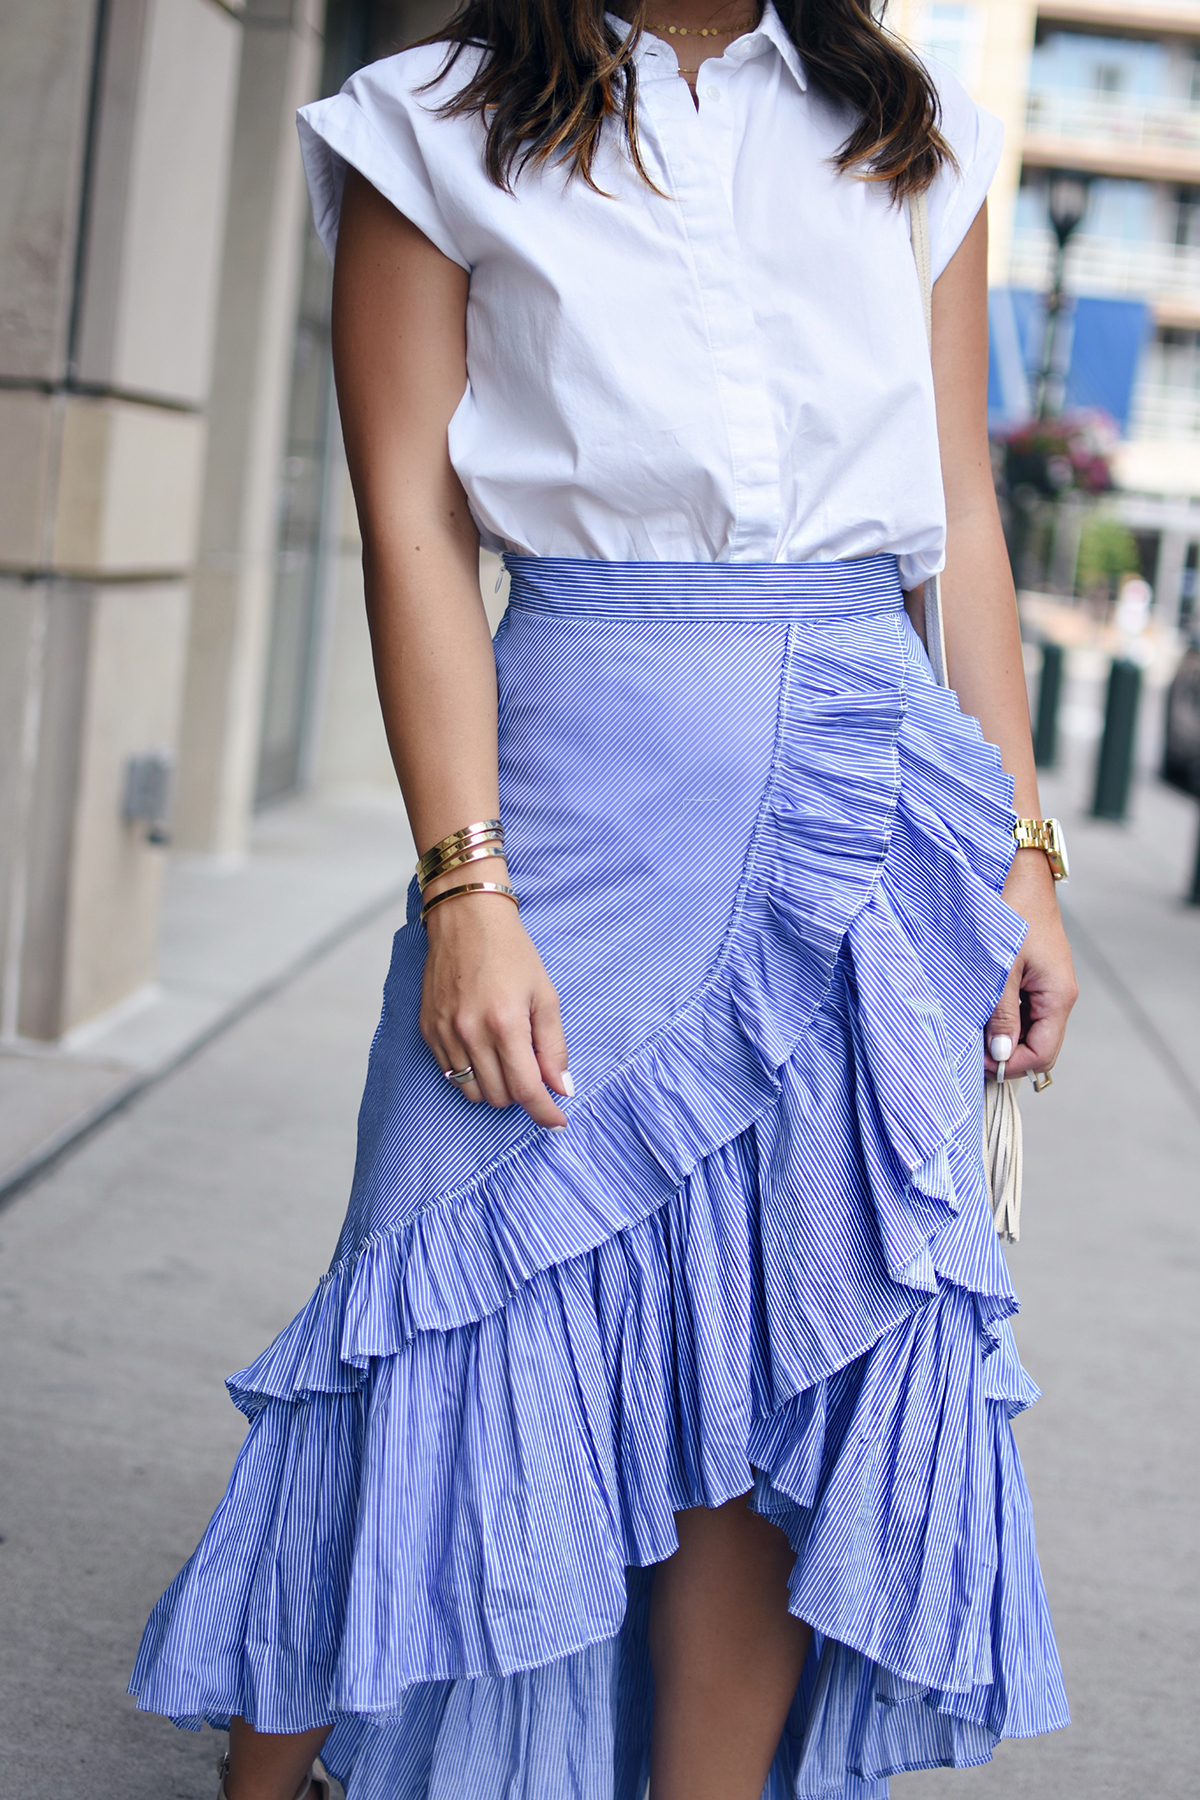 Carolina Hellal of Chic Talk wearing a Chicwish Maxi Skirt, Topshop white button down and Public Desire sandals